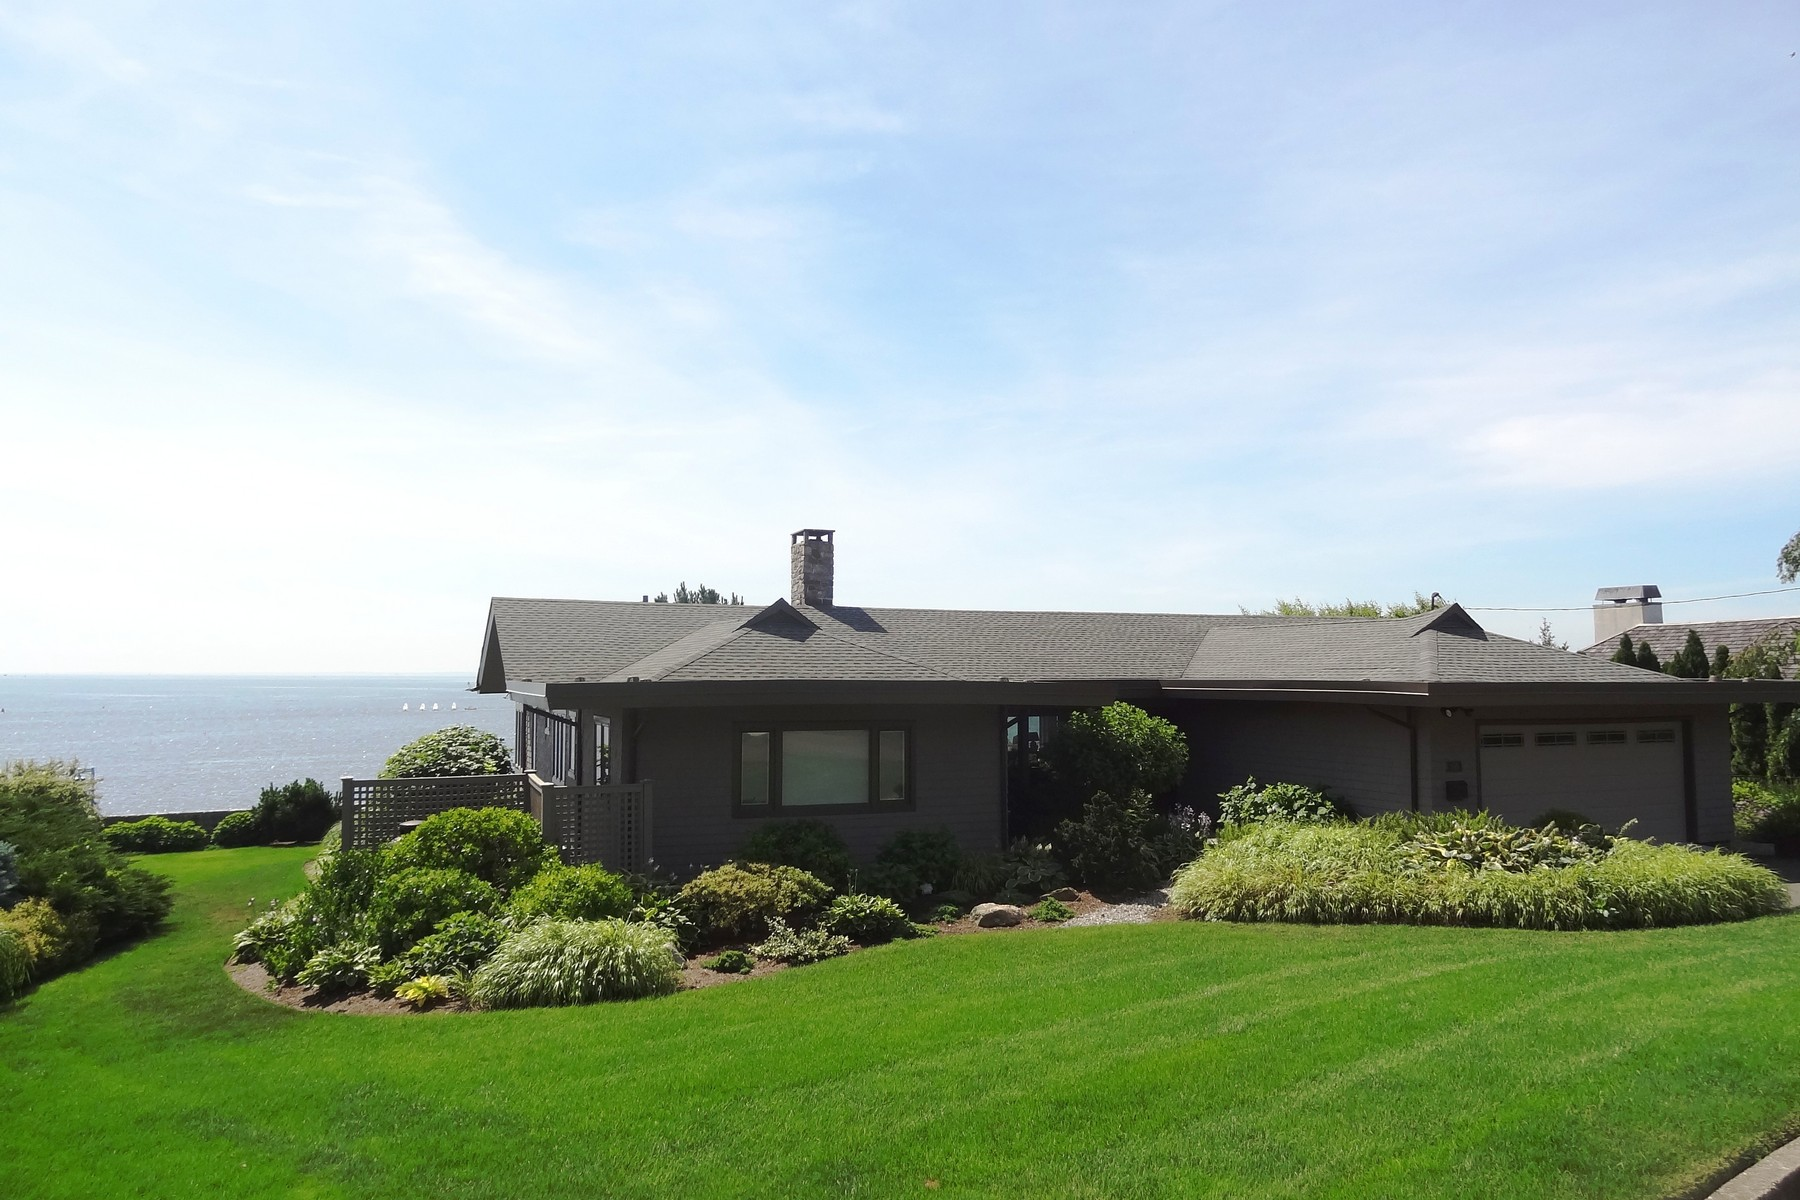 Moradia para Venda às Views, Views, Views from Dramatic Ranch Style Home with Contemporary Flair 105 Battery Park Drive Bridgeport, Connecticut, 06605 Estados Unidos